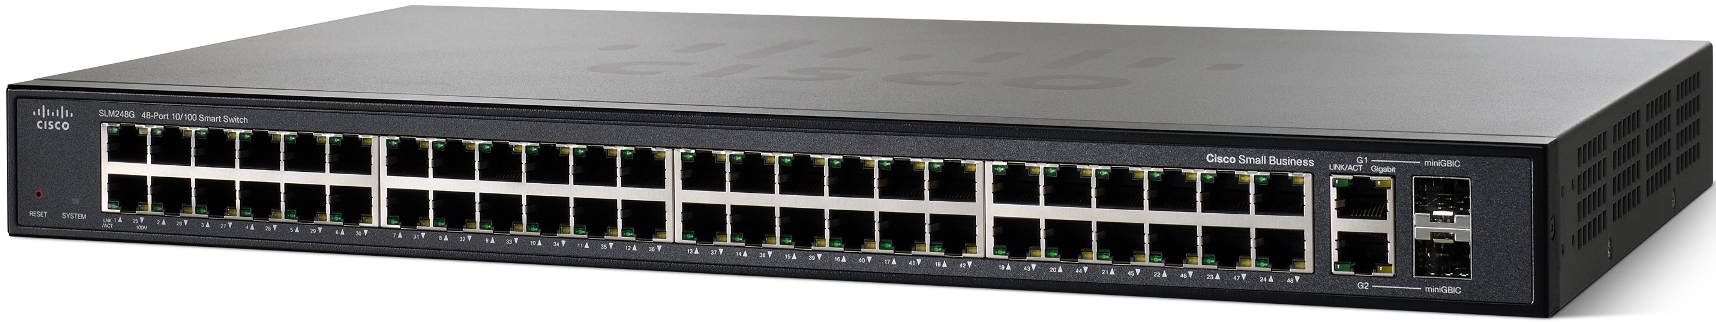 Cisco SF200-48, 48x10/100, Smart, SLM248GT-EU